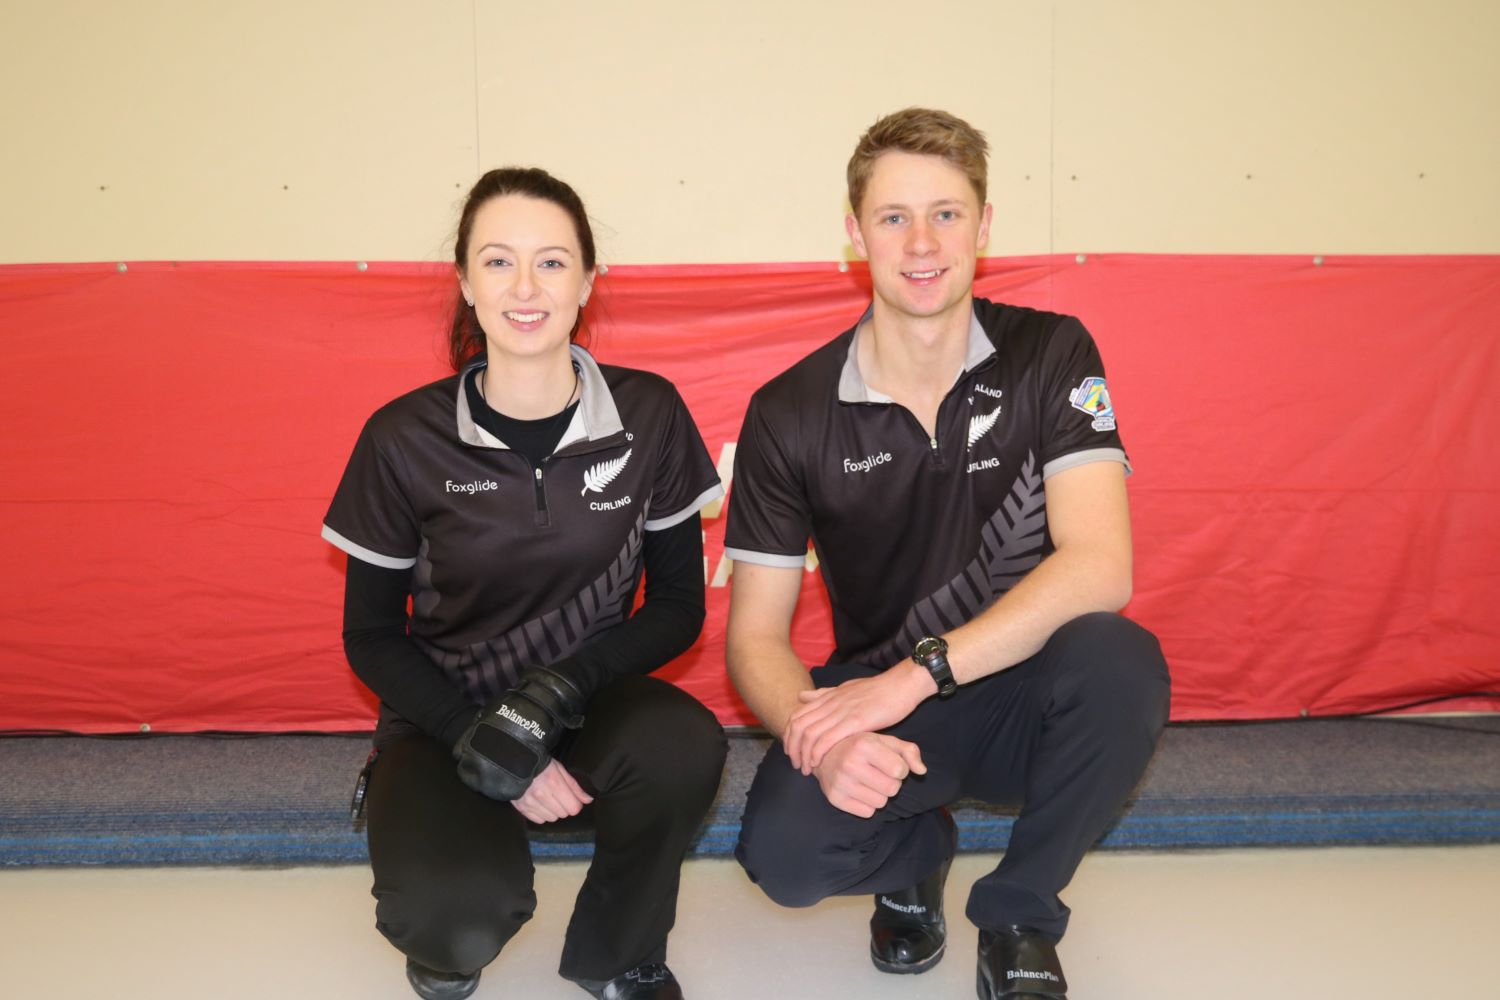 Jess Smith and Ben Smith, Team NZL